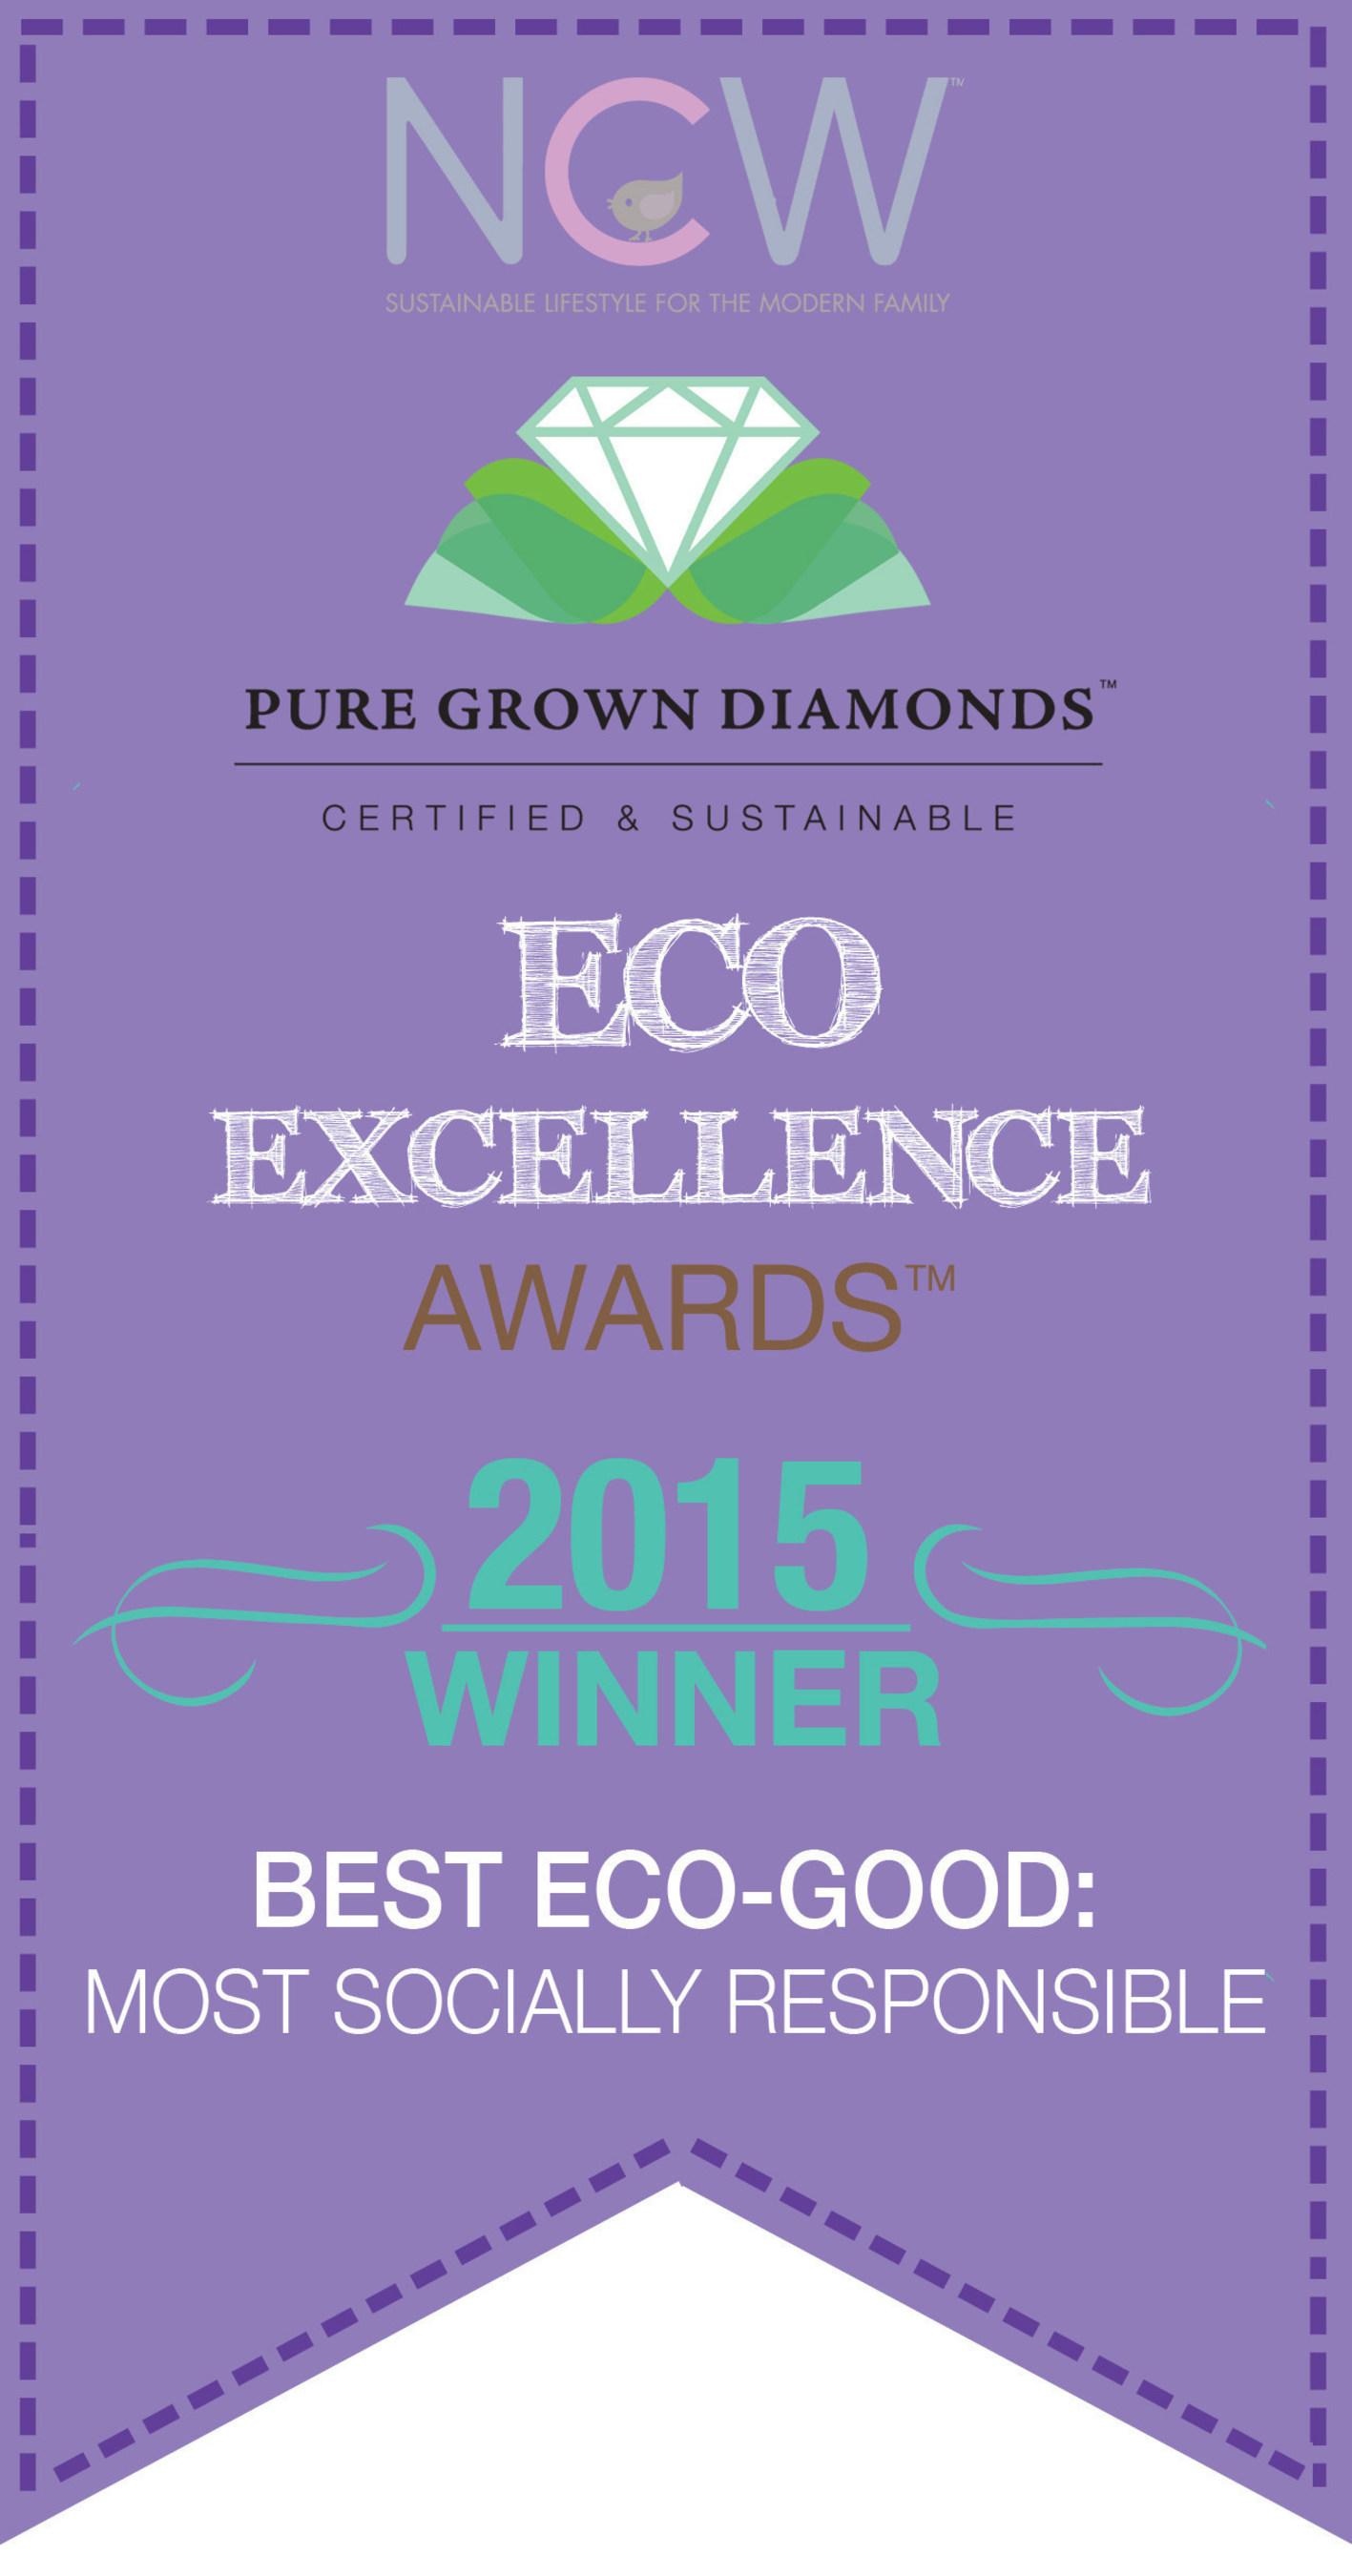 Pure Grown Diamonds wins Most Socially Responsible Eco-Good in the 2015 Eco-Excellence Awards.